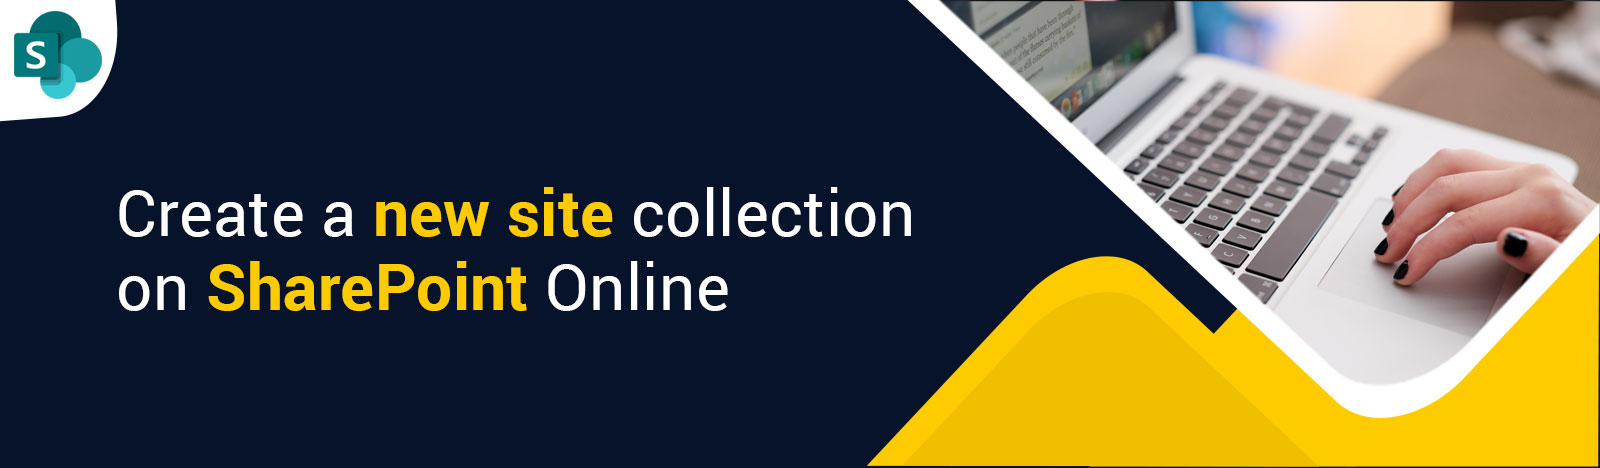 Create a new site collection on SharePoint Online